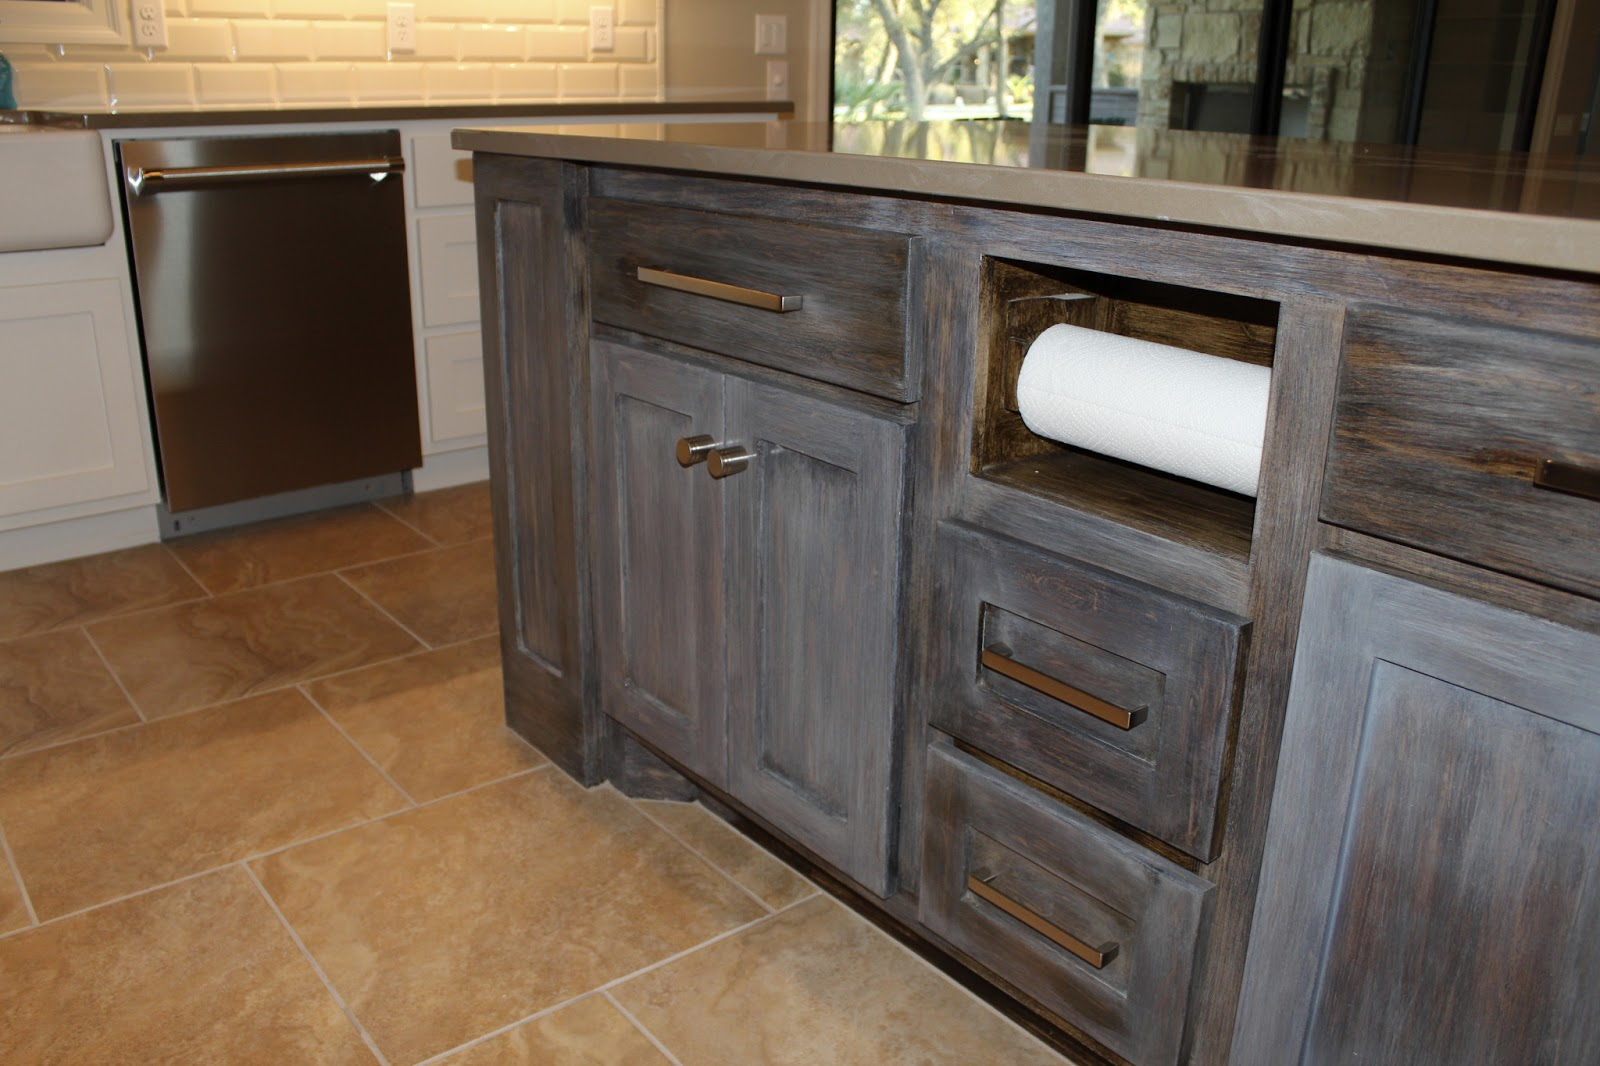 Kitchen Paper Towel Dispenser Kitchen Ideas - Kitchen paper towel dispenser